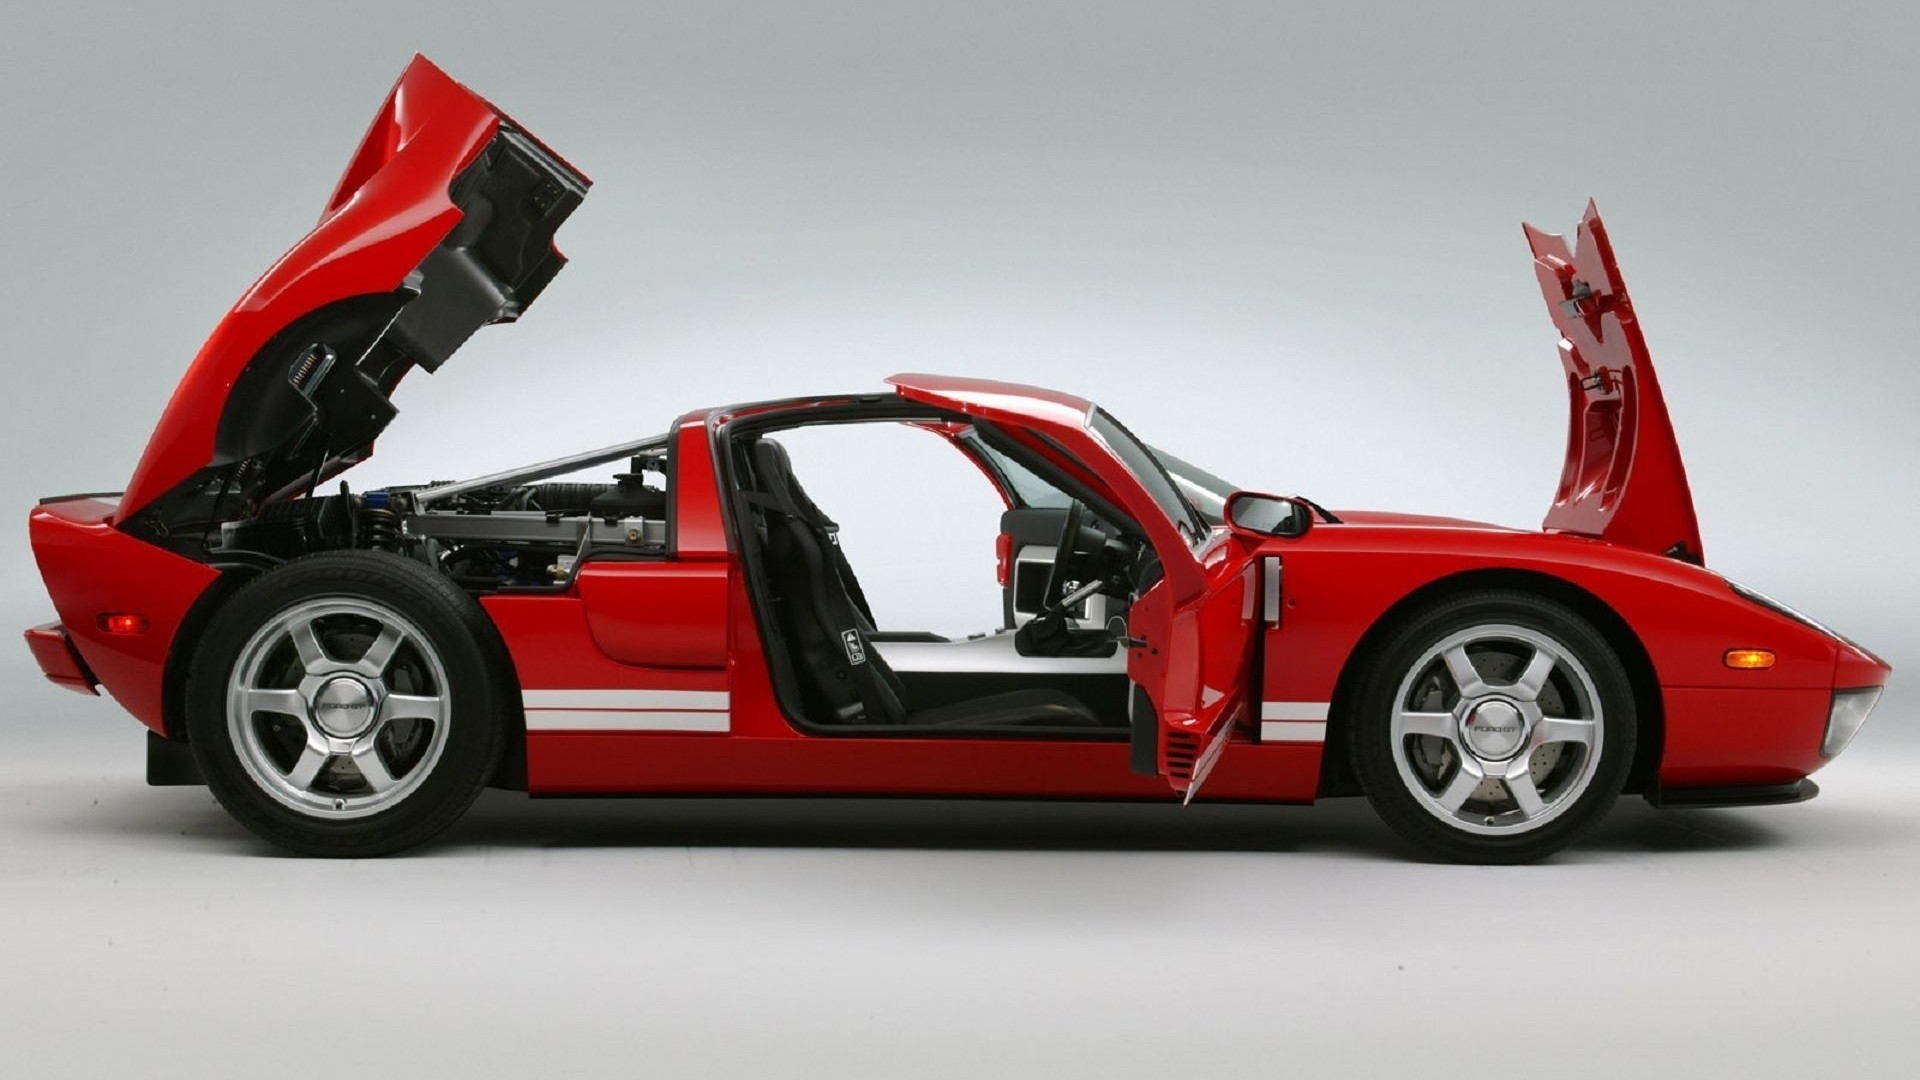 Wallpaper Ford gt Exotic Rare Supercar Red Cars Machines 1920x1080